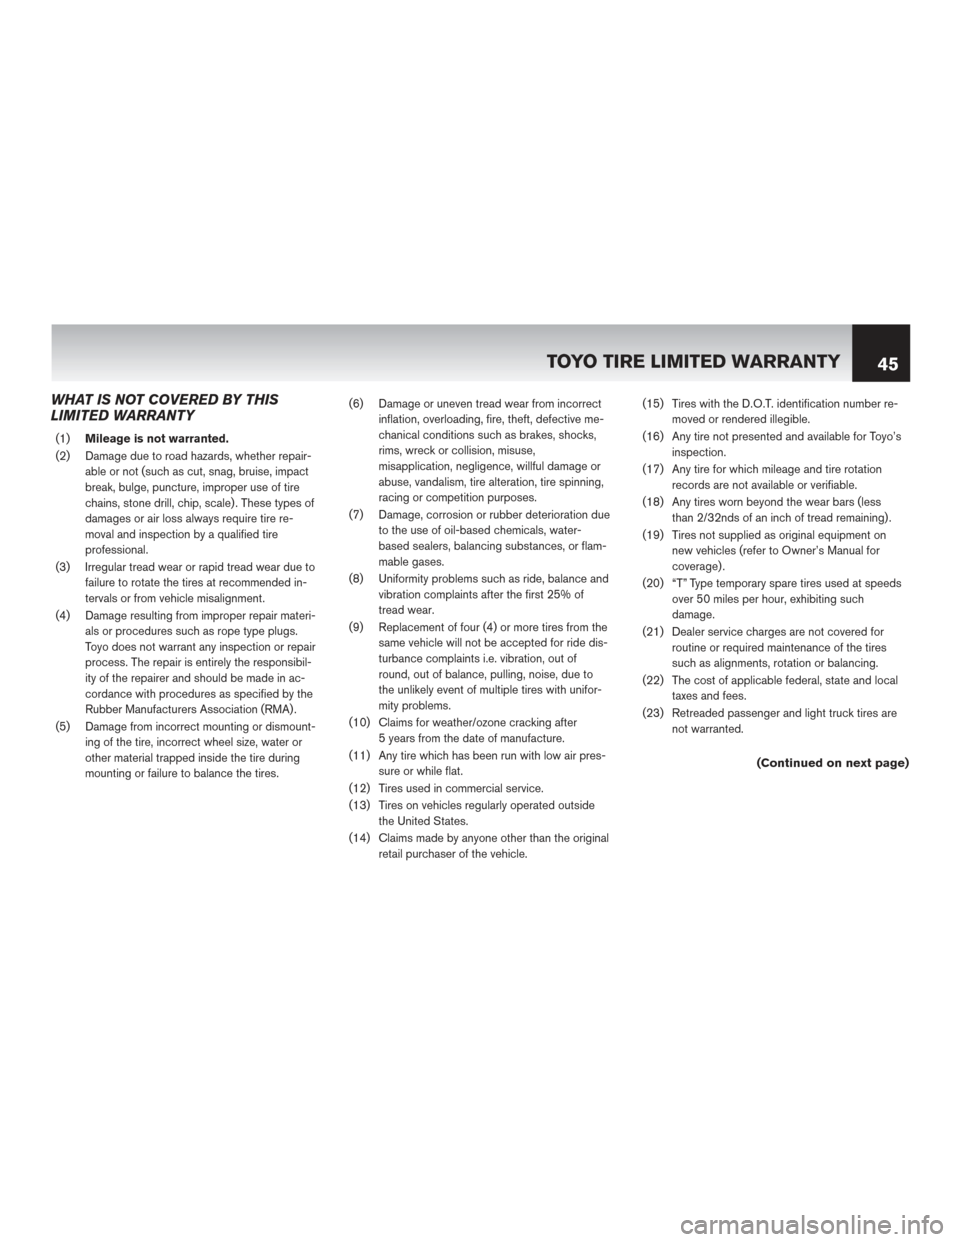 NISSAN QUEST 2014 RE52 / 4.G Warranty Booklet, Page 49